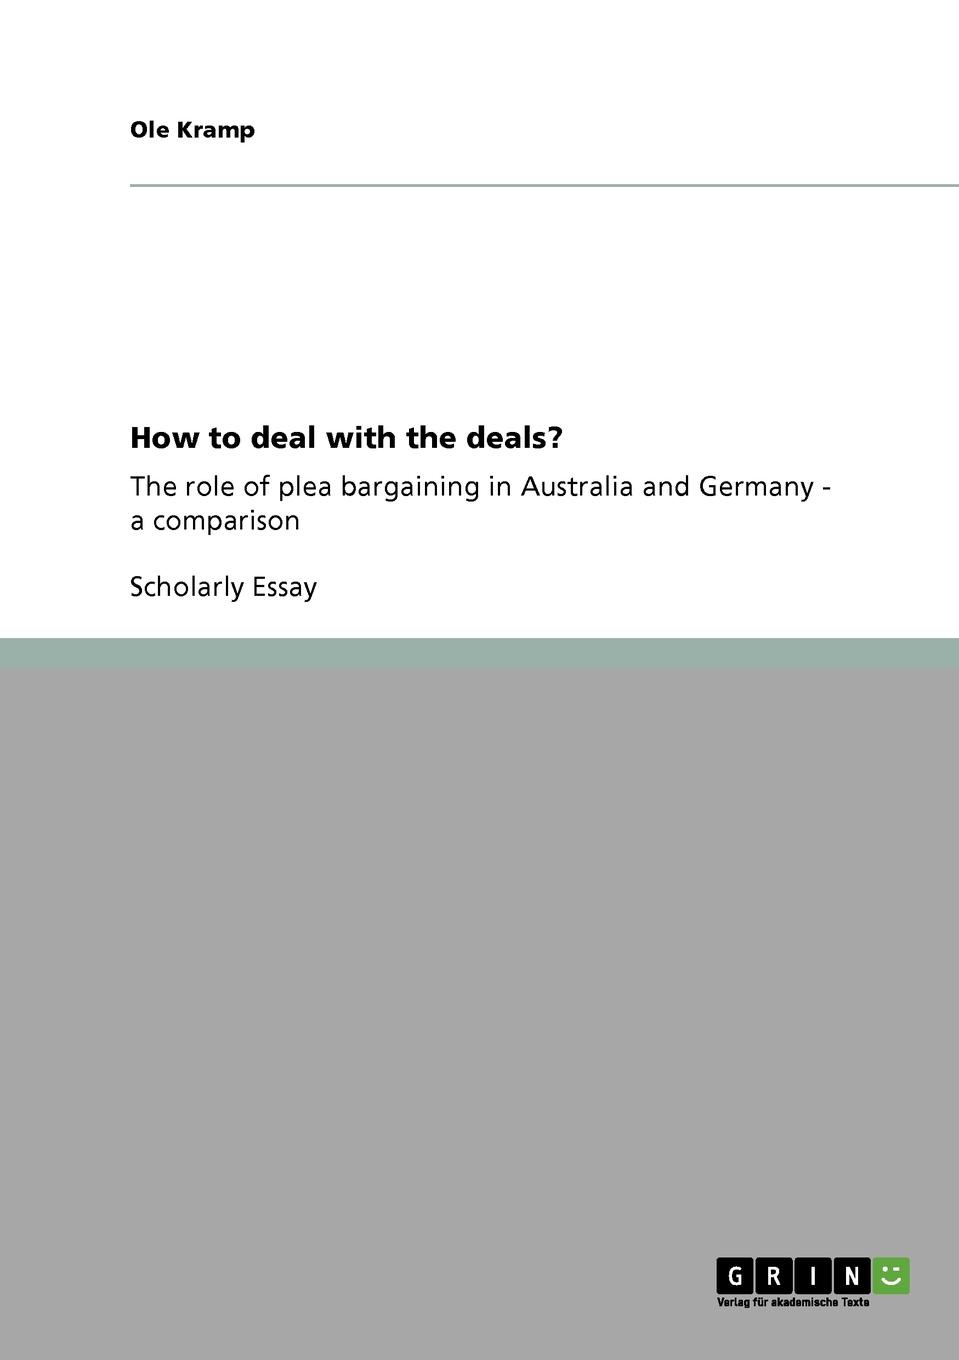 Ole Kramp How to deal with the deals. the plea